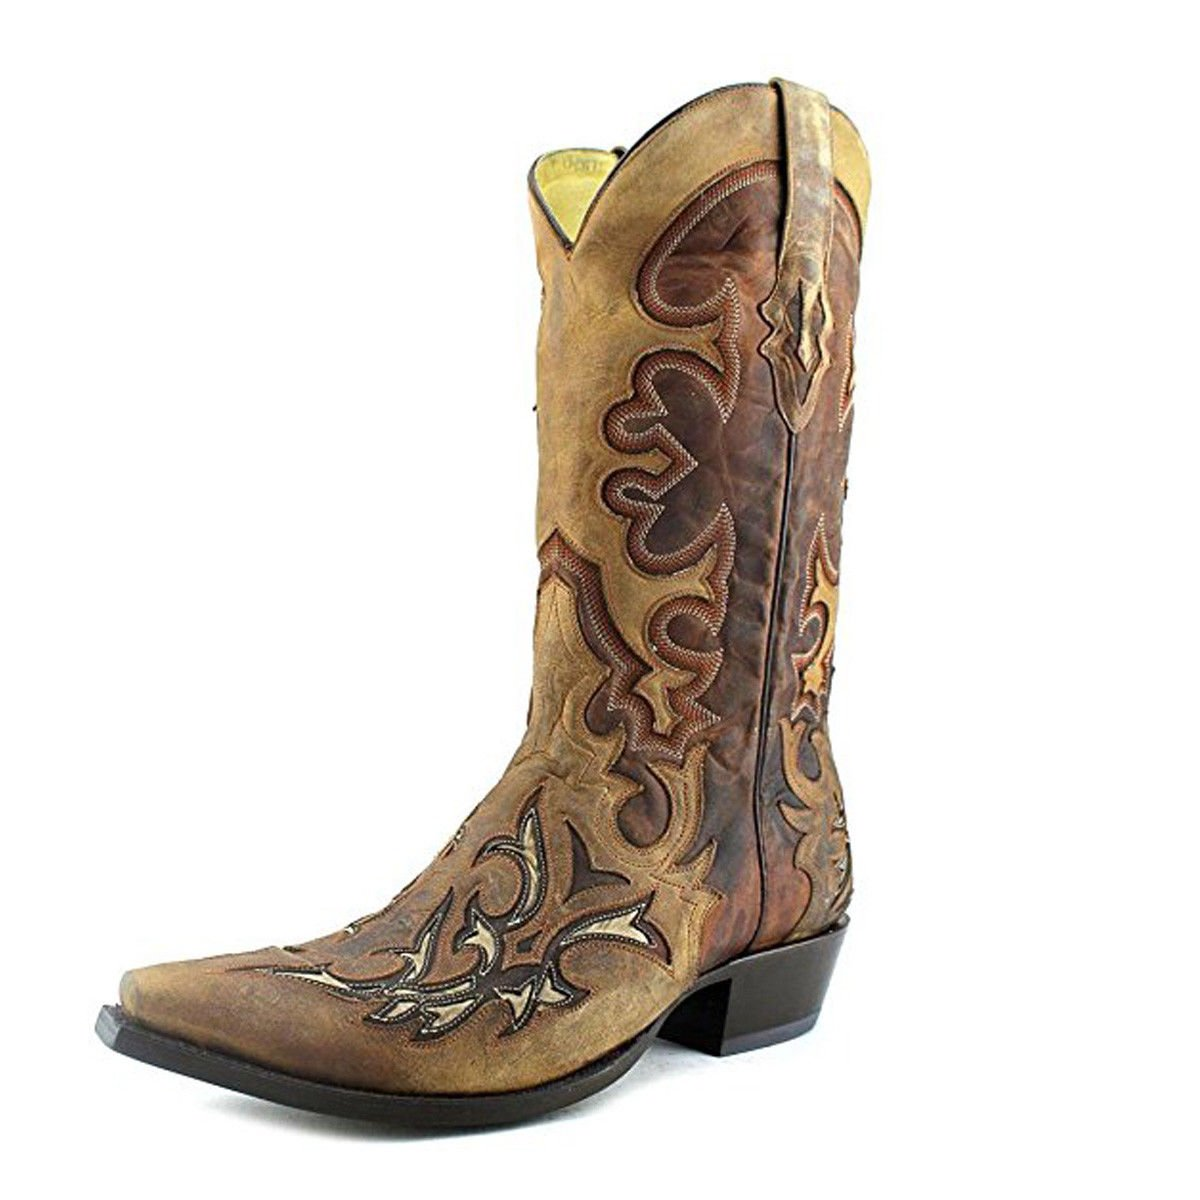 Corral Men S Inlay Cowboy Boots G1144 Ebay